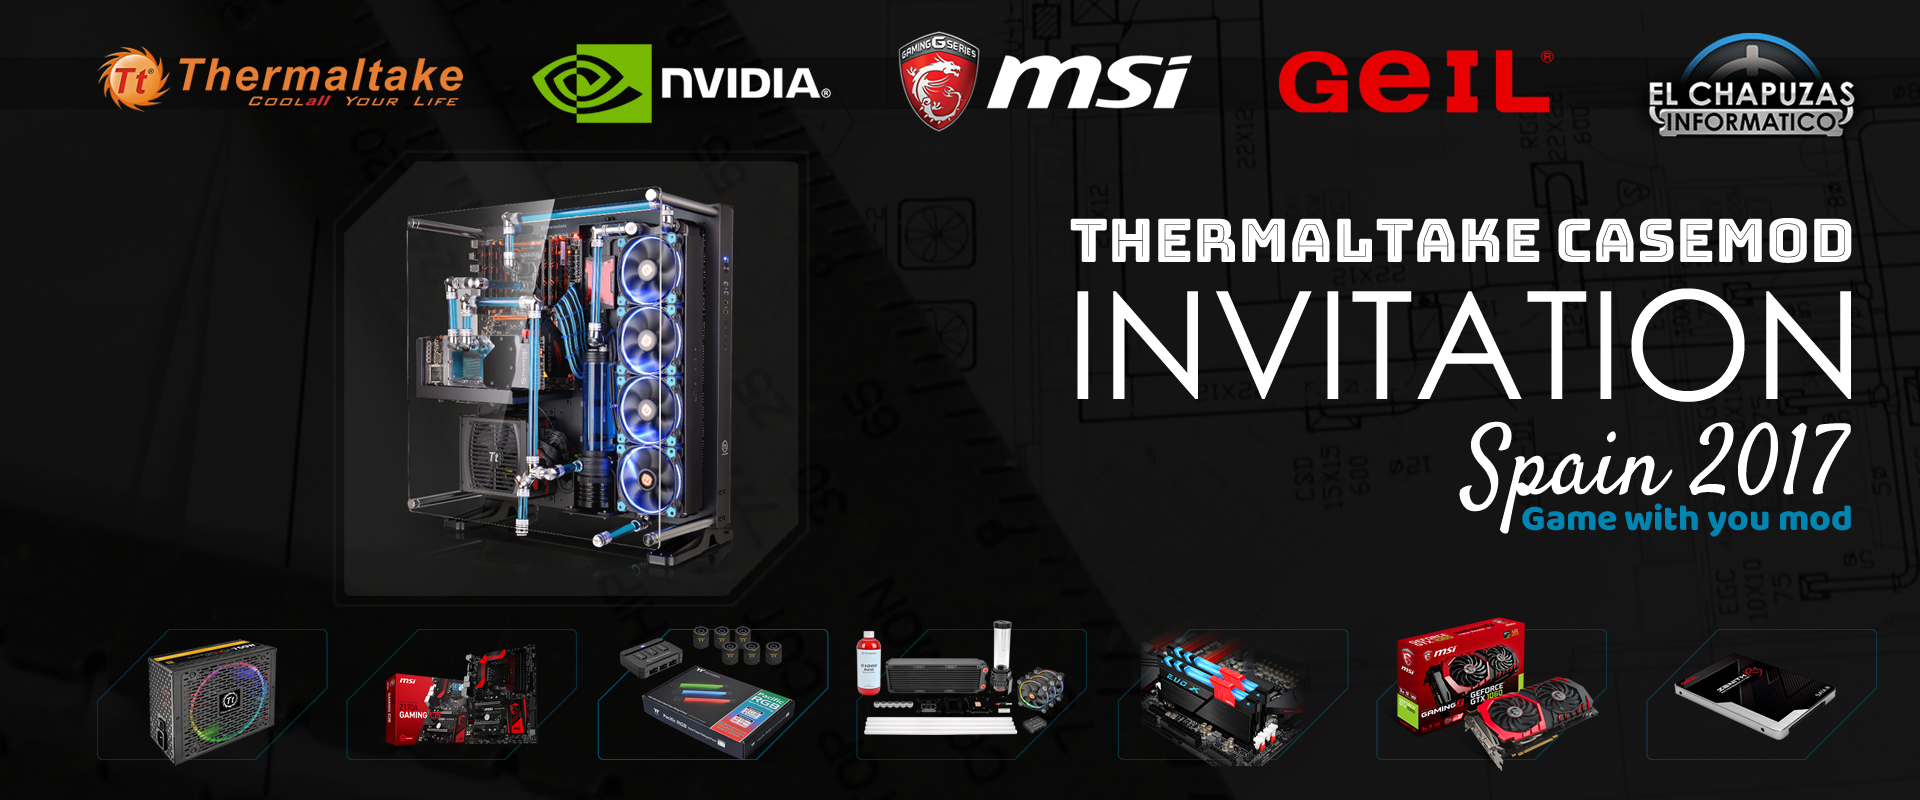 Thermaltake CaseMod Invitation Spain 2017